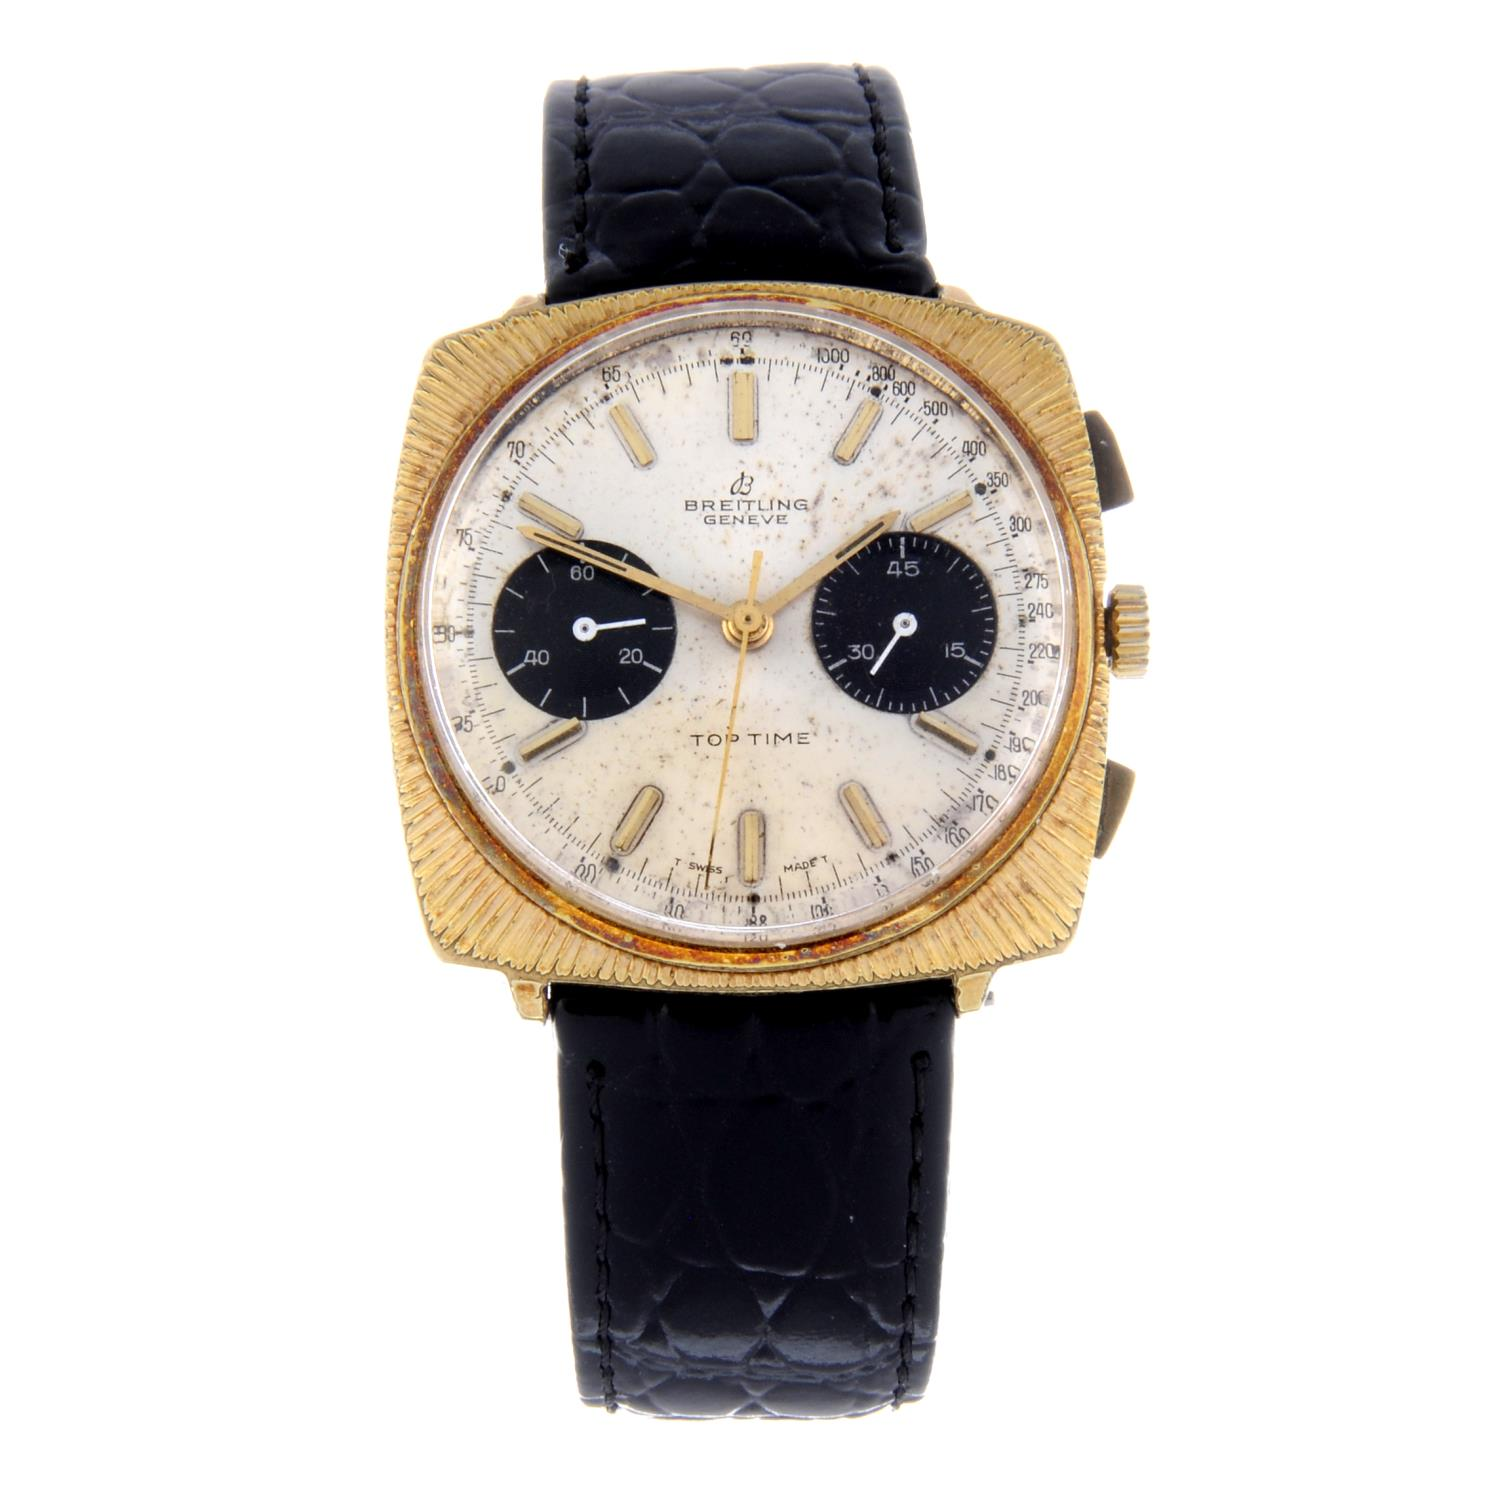 Lot 4 - BREITLING - a gentleman's Top Time chronograph wrist watch.